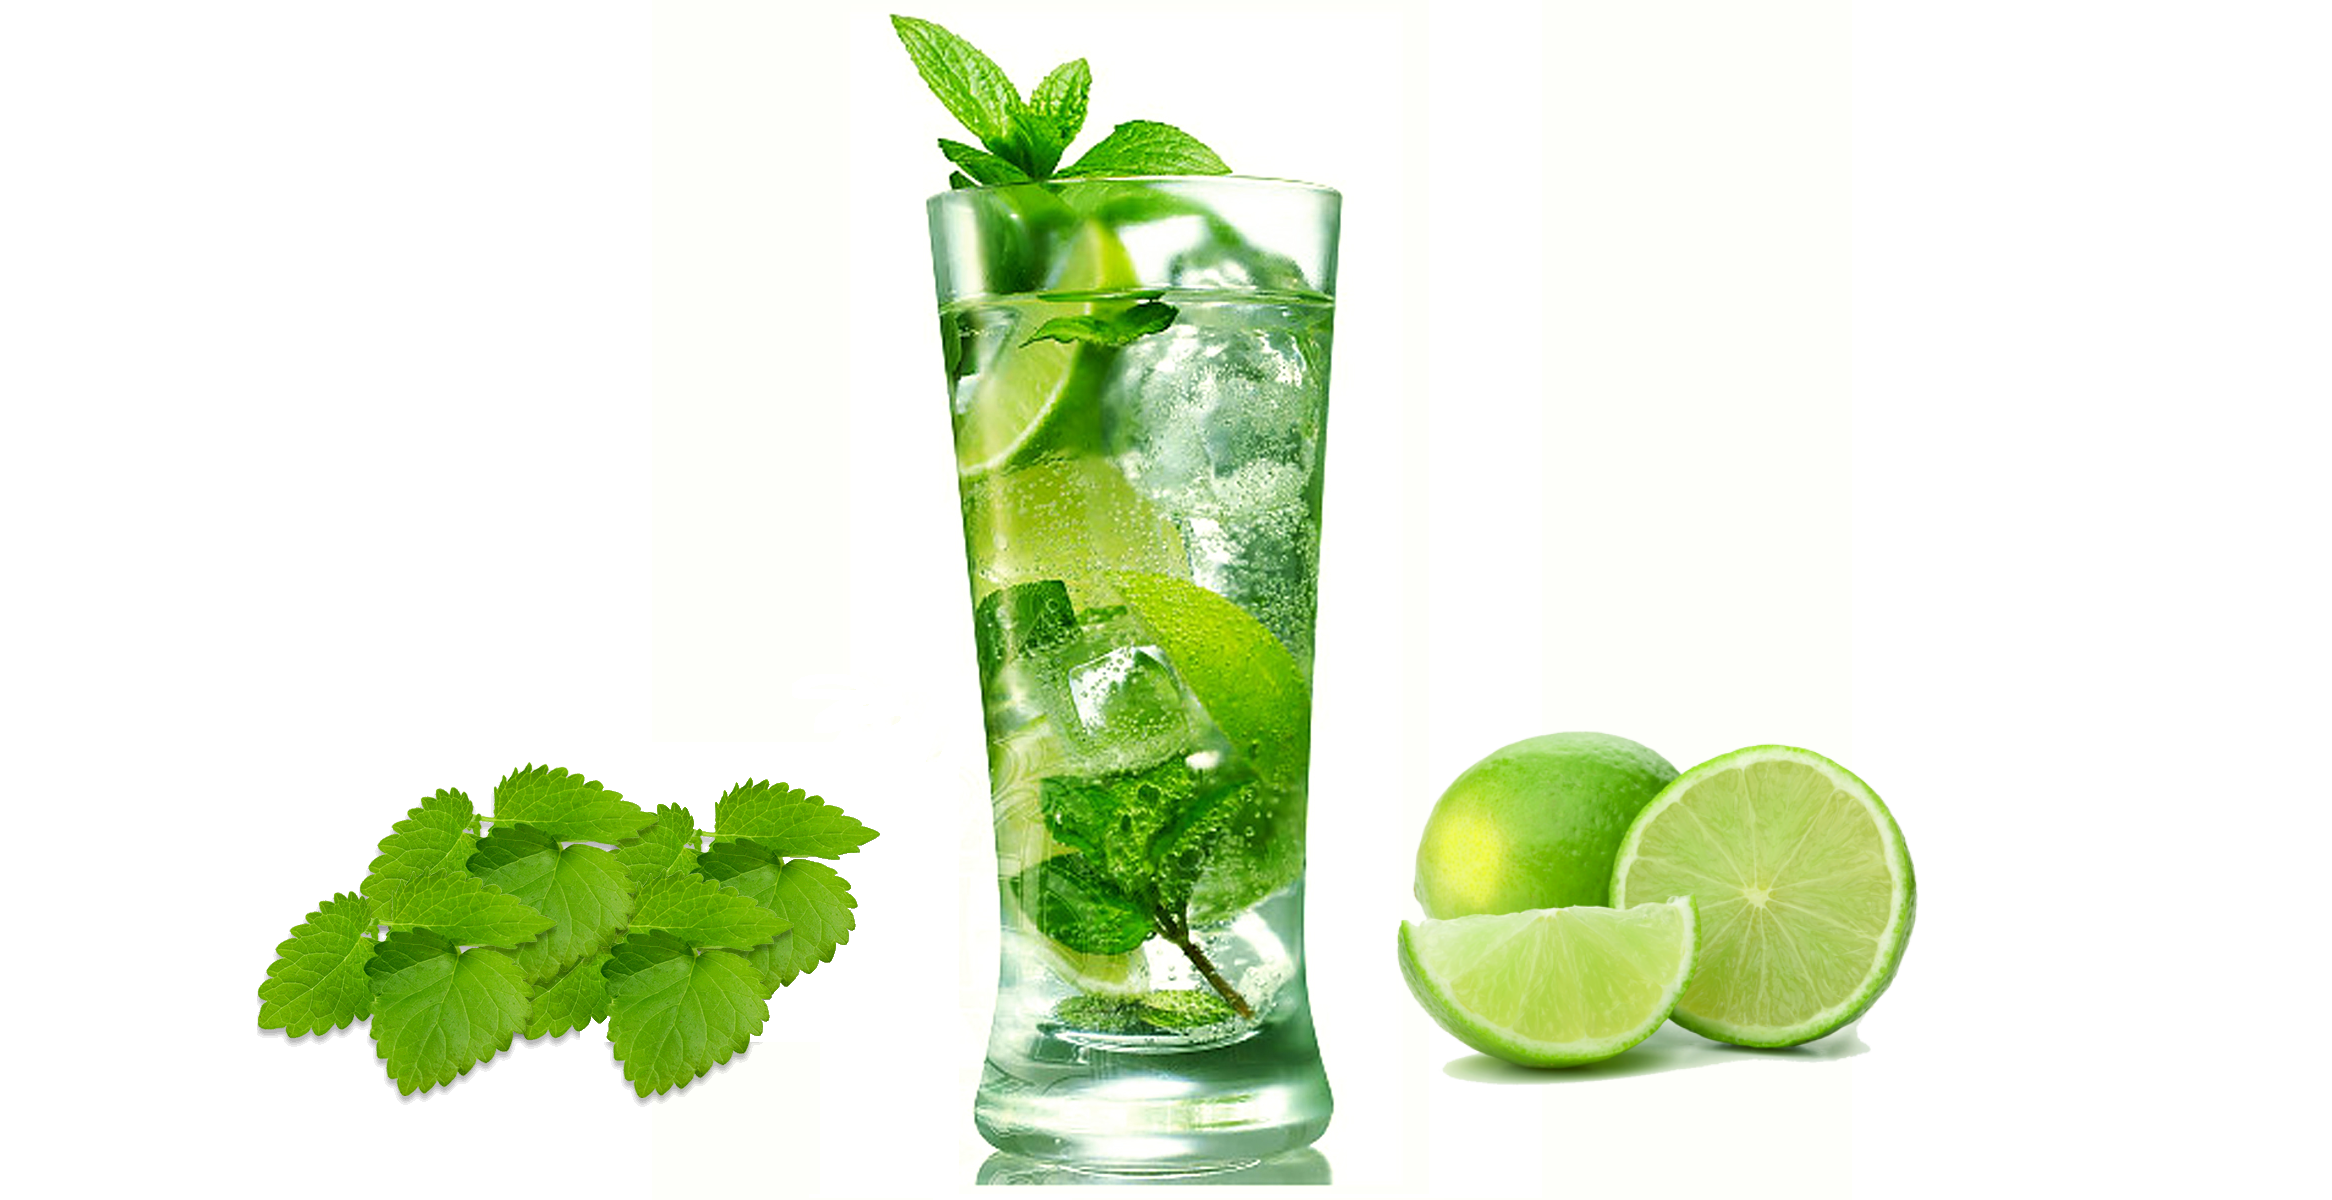 Mojito Desktop Wallpapers Wallpapers High Quality | Download Free